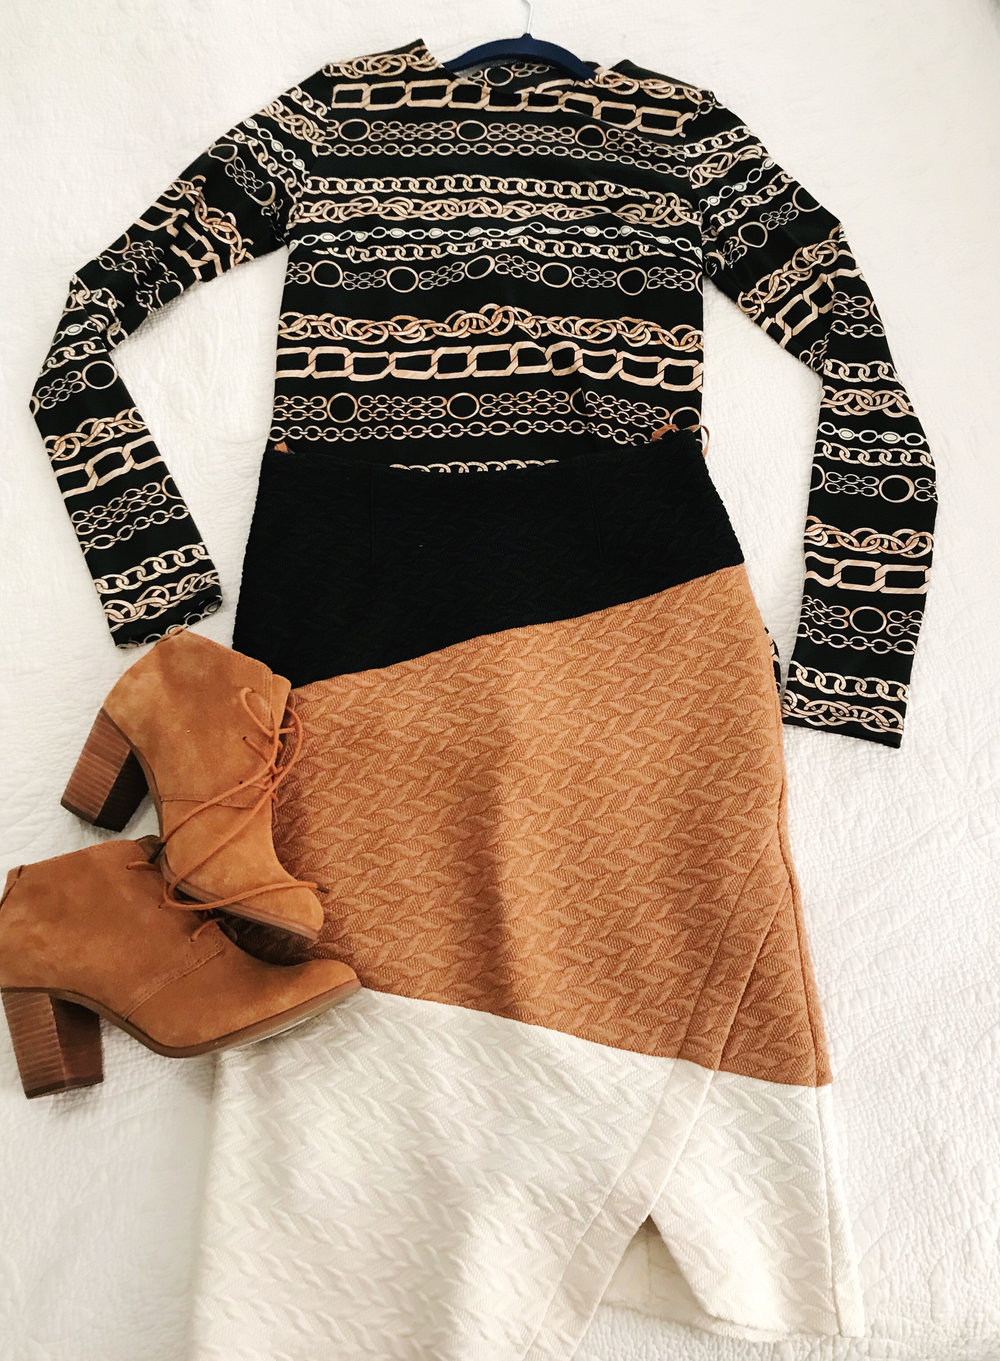 """Anthropologie skirt, Tom's booties. The base layer here is actually a chain-pattern dress I've had forever! It's thin enough to fit under the skirt and double as a faux """"top"""" :-)"""